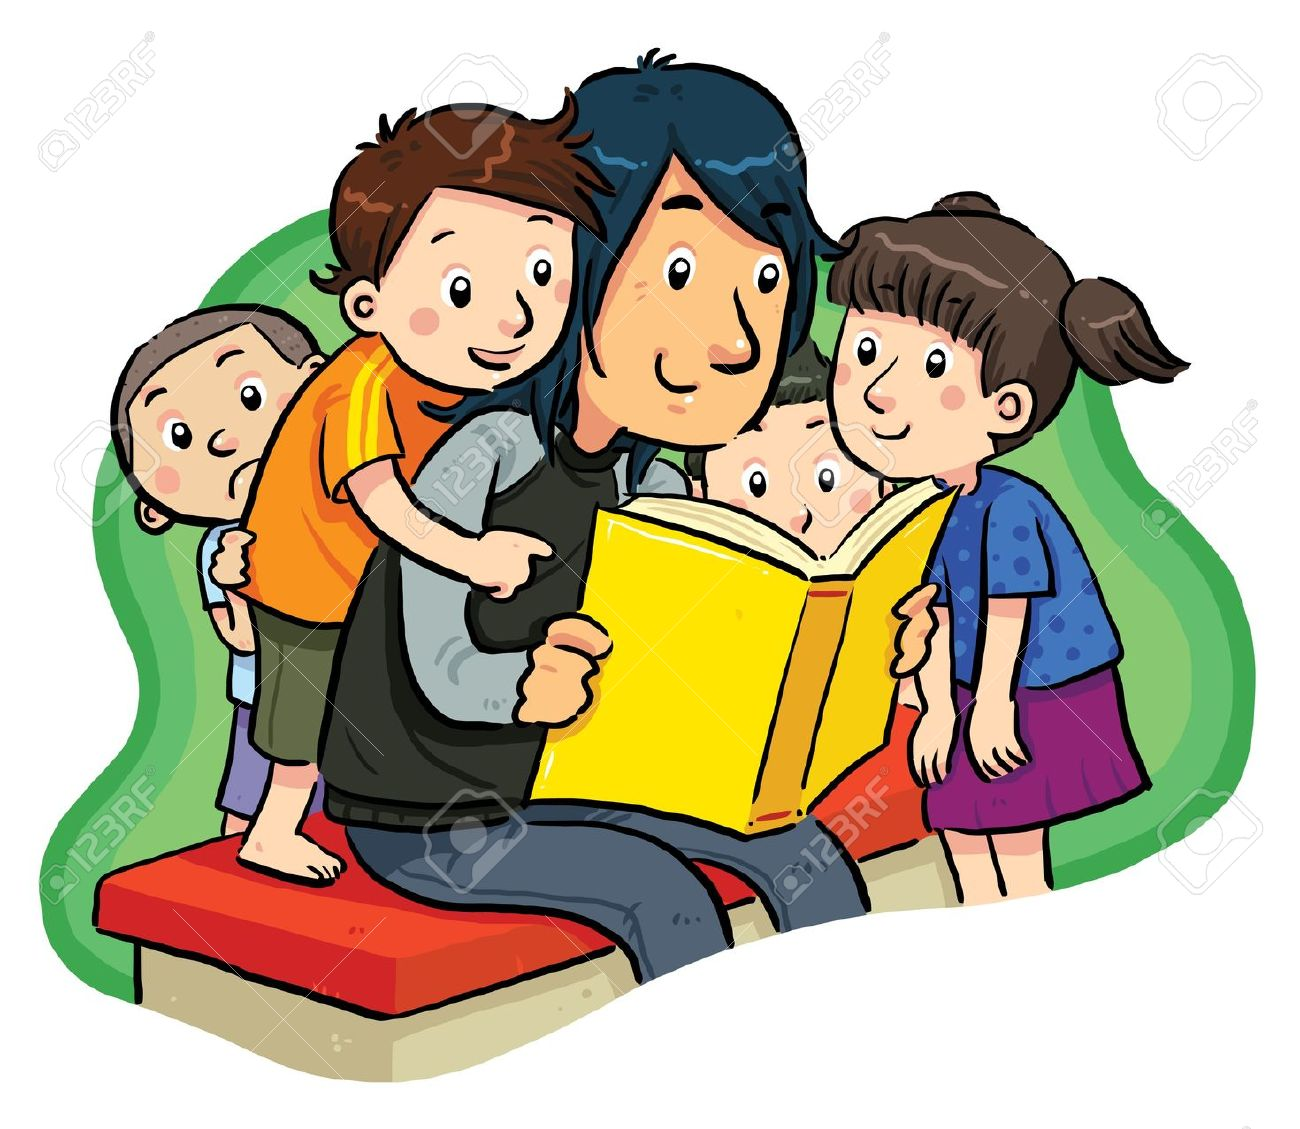 Big Ryan The Storyteller, Storytelling Free Clipart.